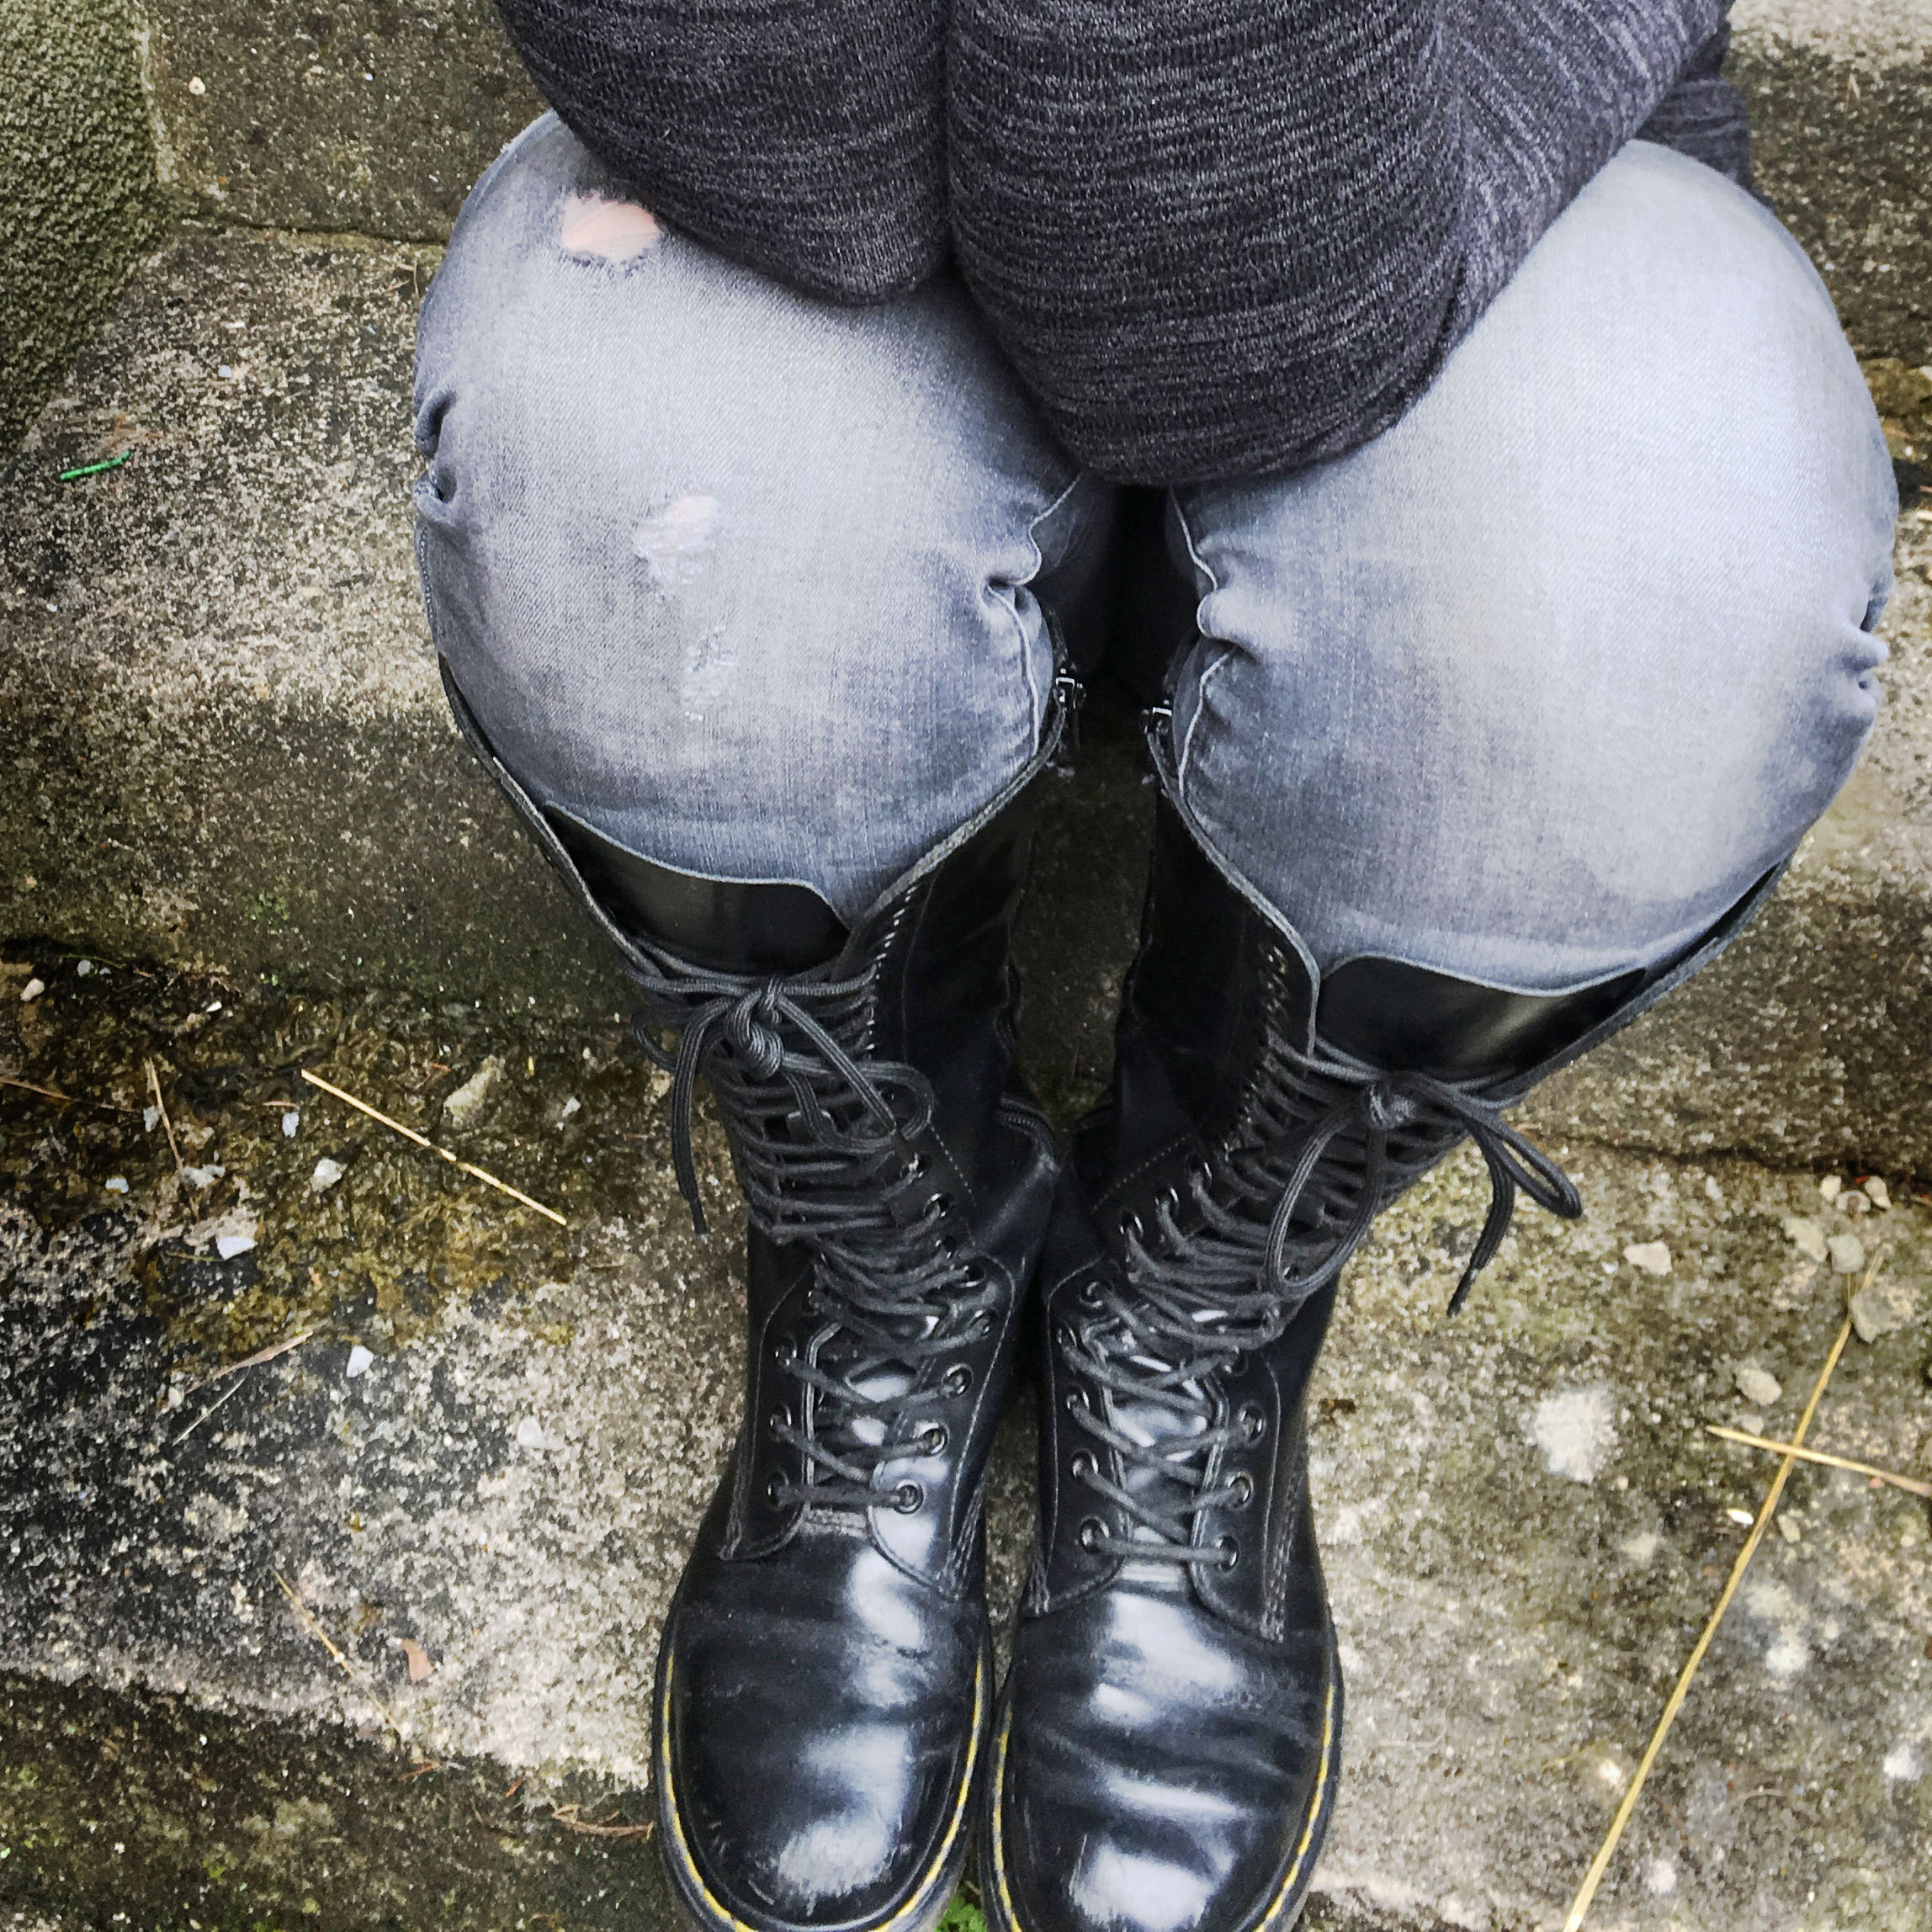 Dr Martens boots and the image of a woman with elbows on her knees showing anxiety